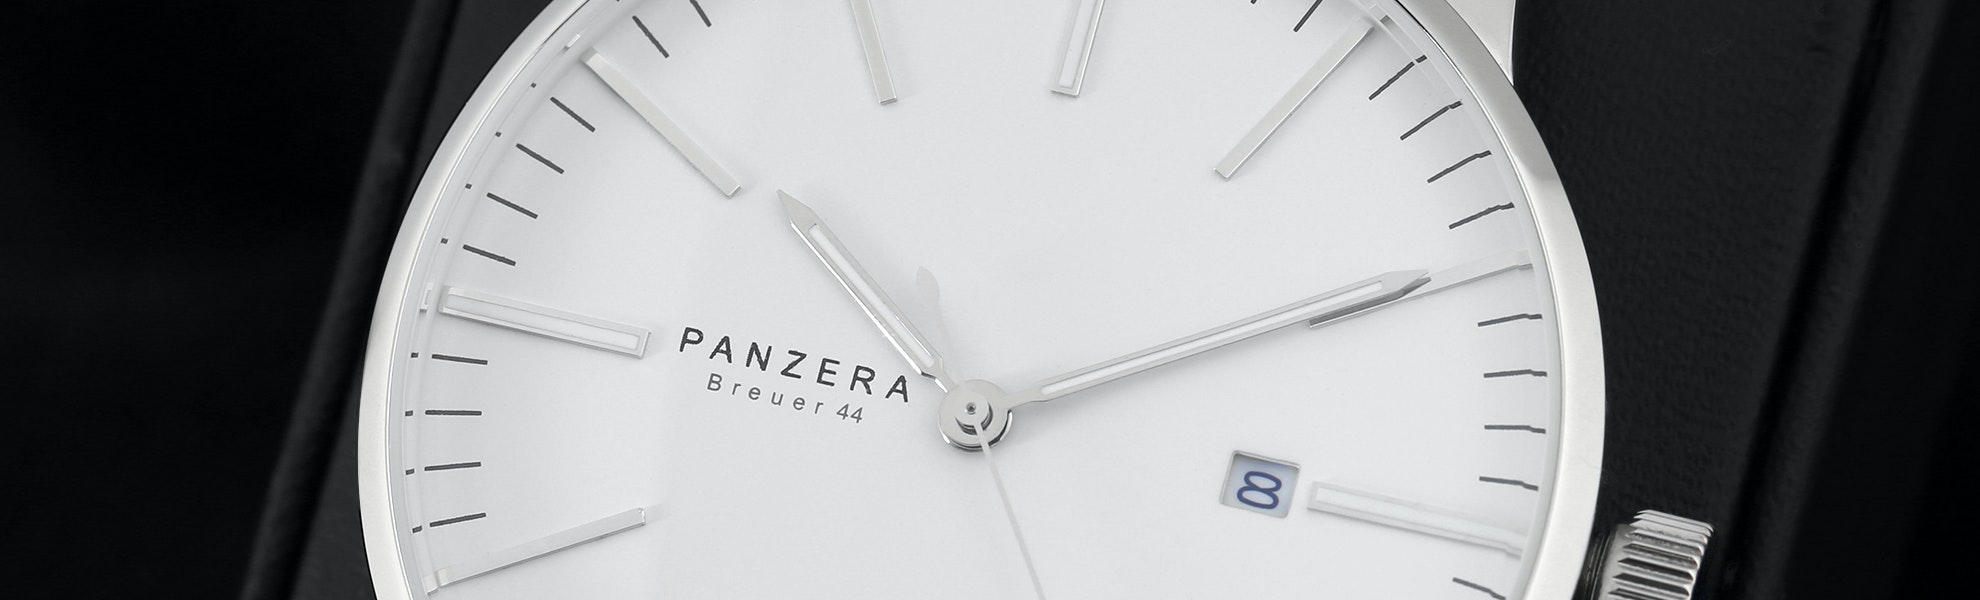 Panzera Breuer Automatic Watch and Pen